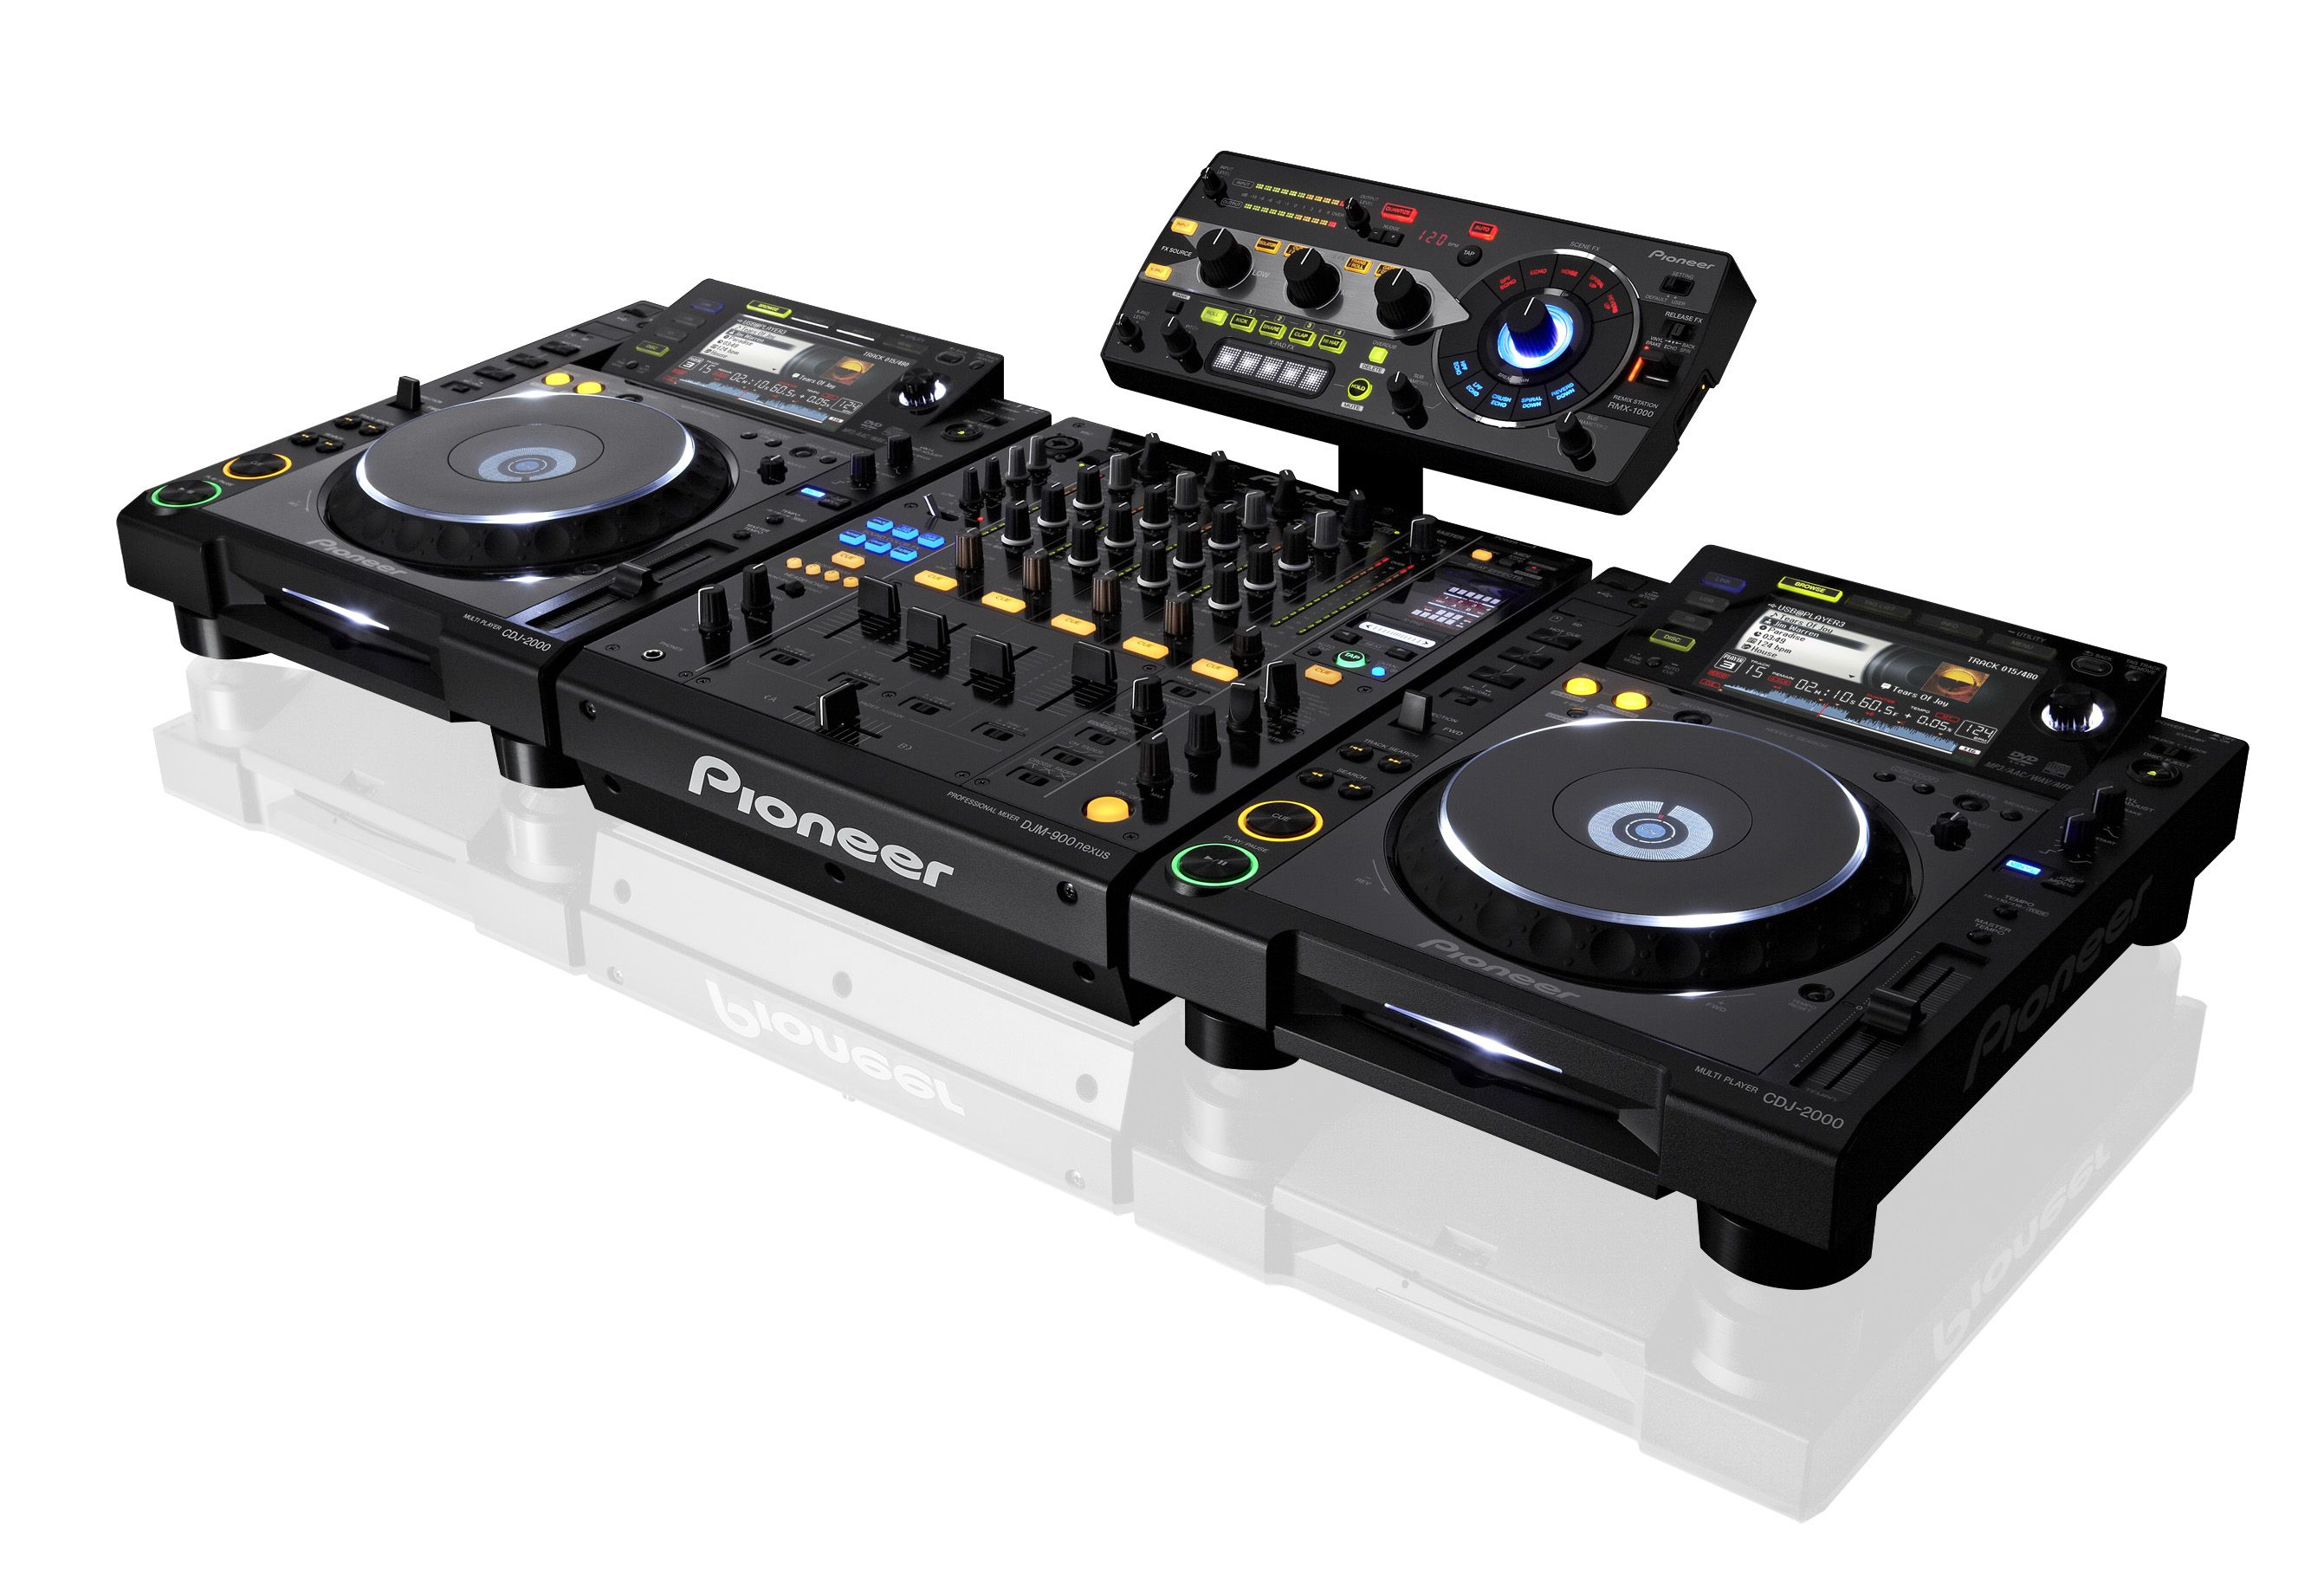 pioneer dj setup amazing dj stuff dj equipment dj music dj setup. Black Bedroom Furniture Sets. Home Design Ideas